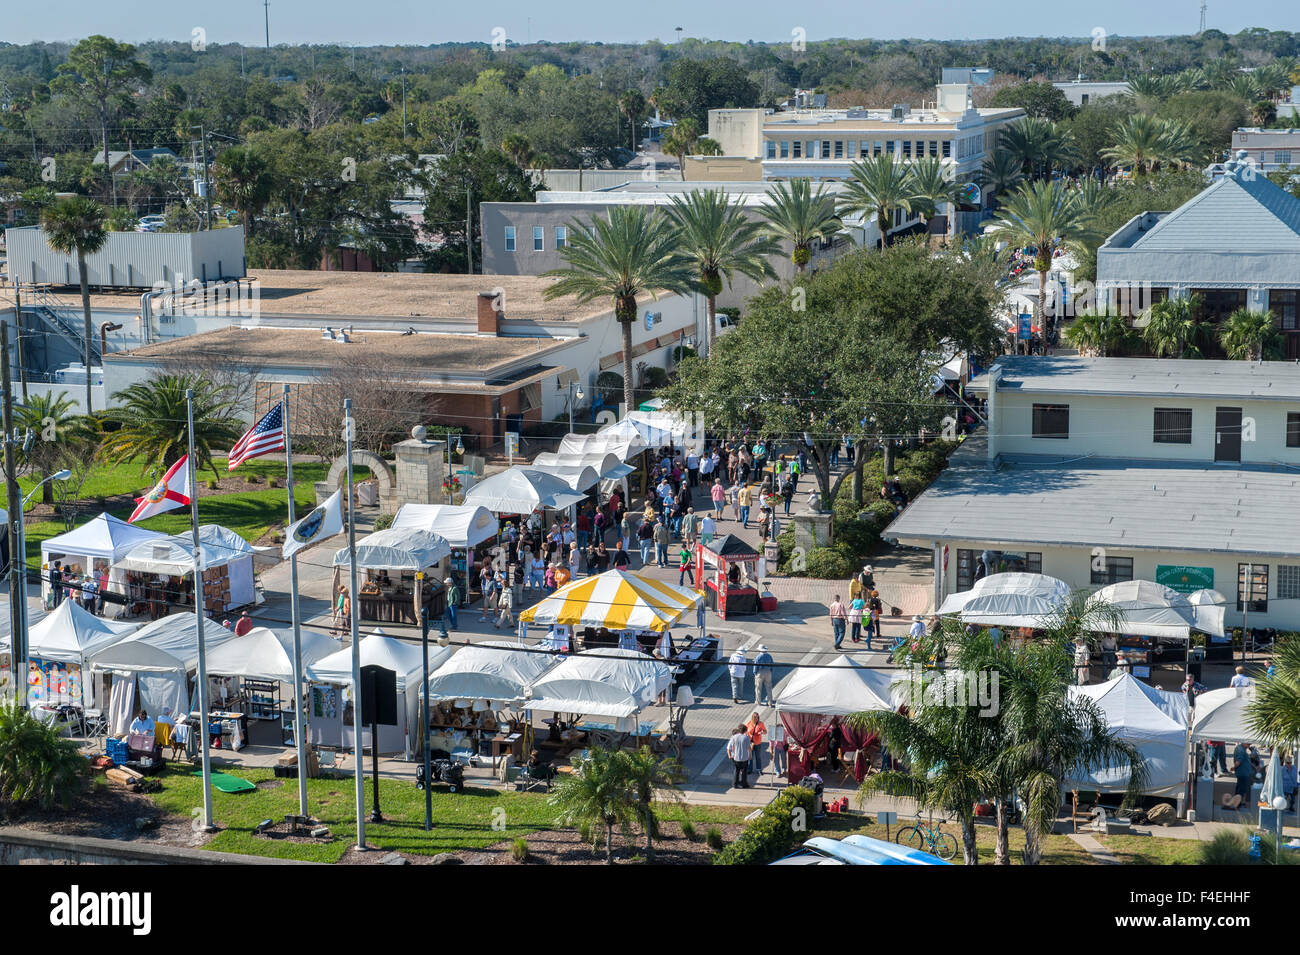 USA, Florida, New Smyrna Beach, Bilder Kunst zu zeigen. Stockbild